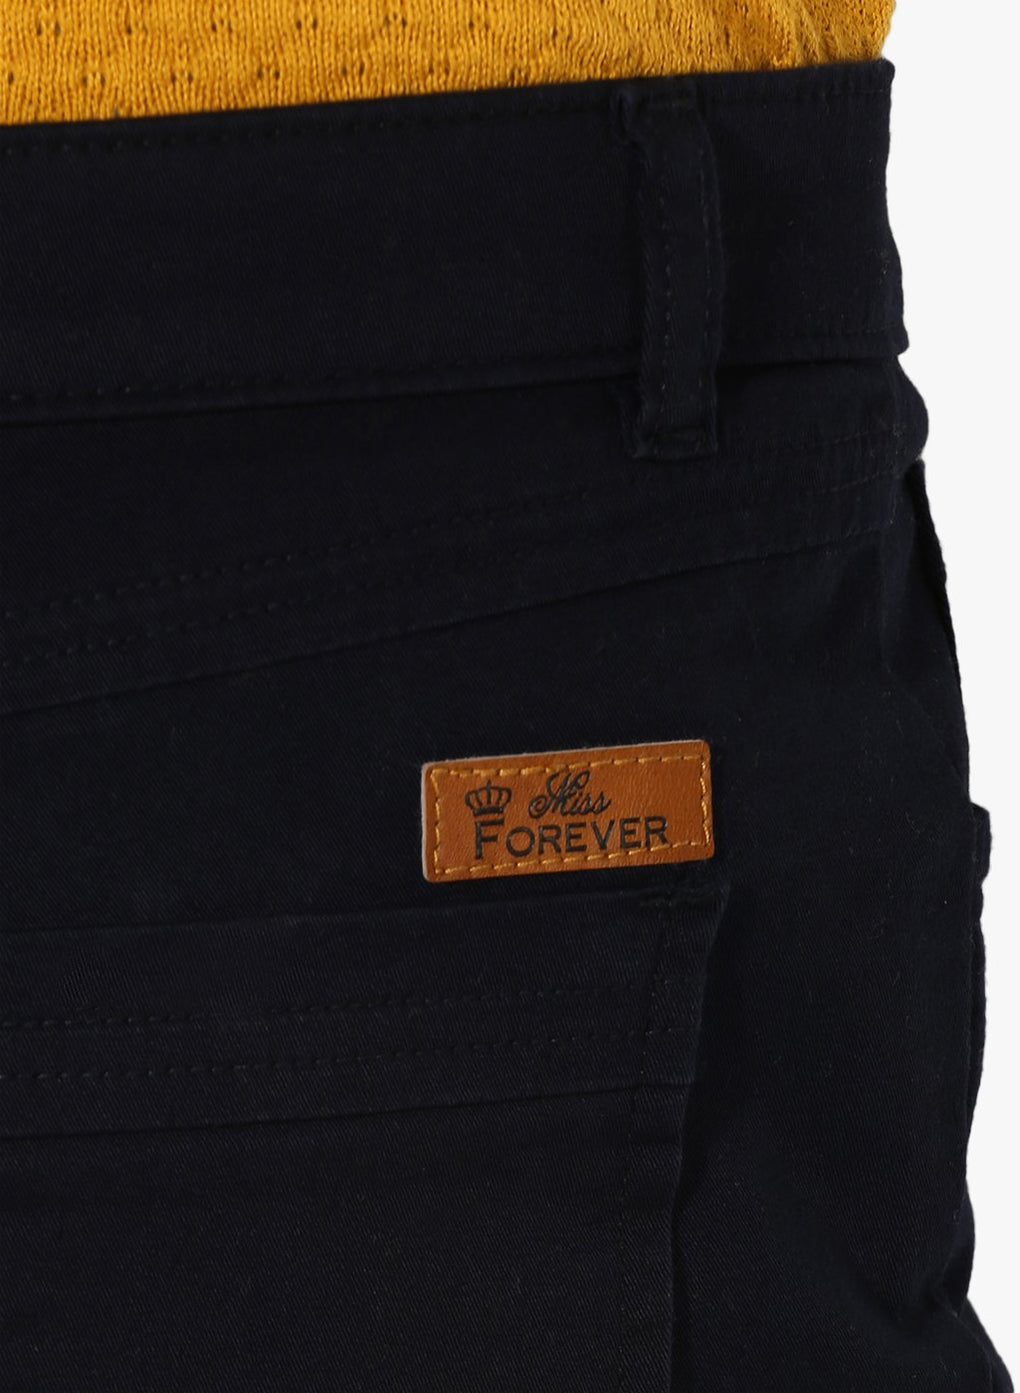 miss forever navy blue slim fit chinos